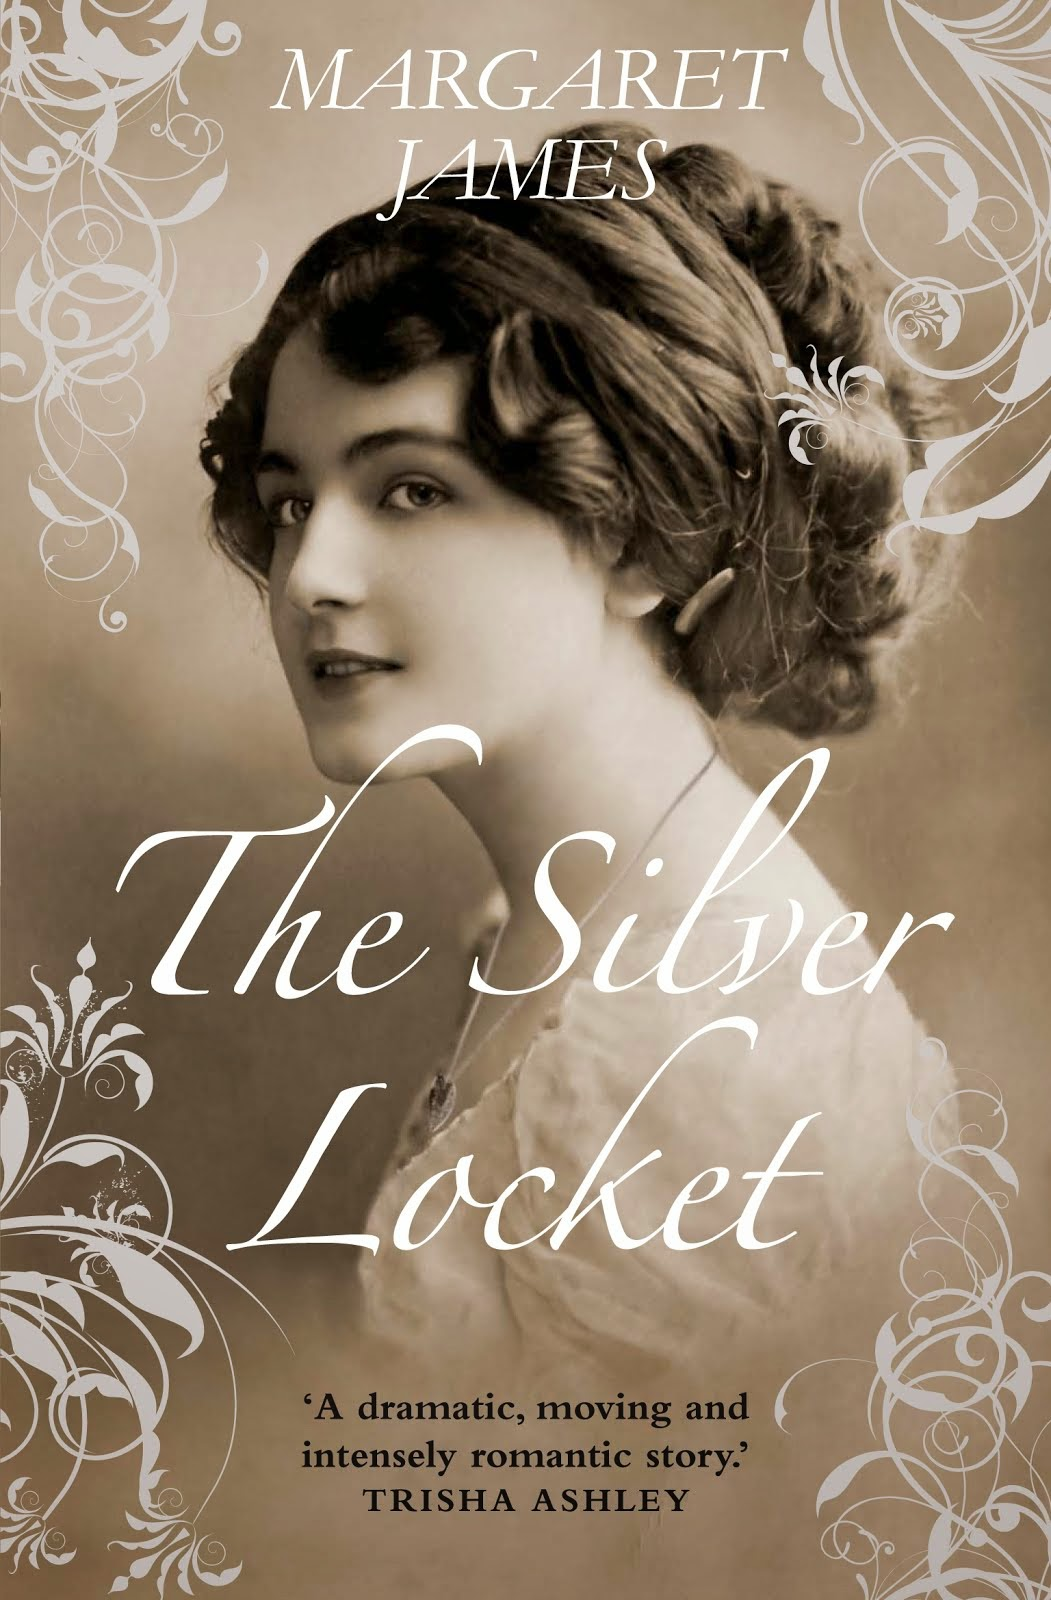 Margaret James The Silver Locket